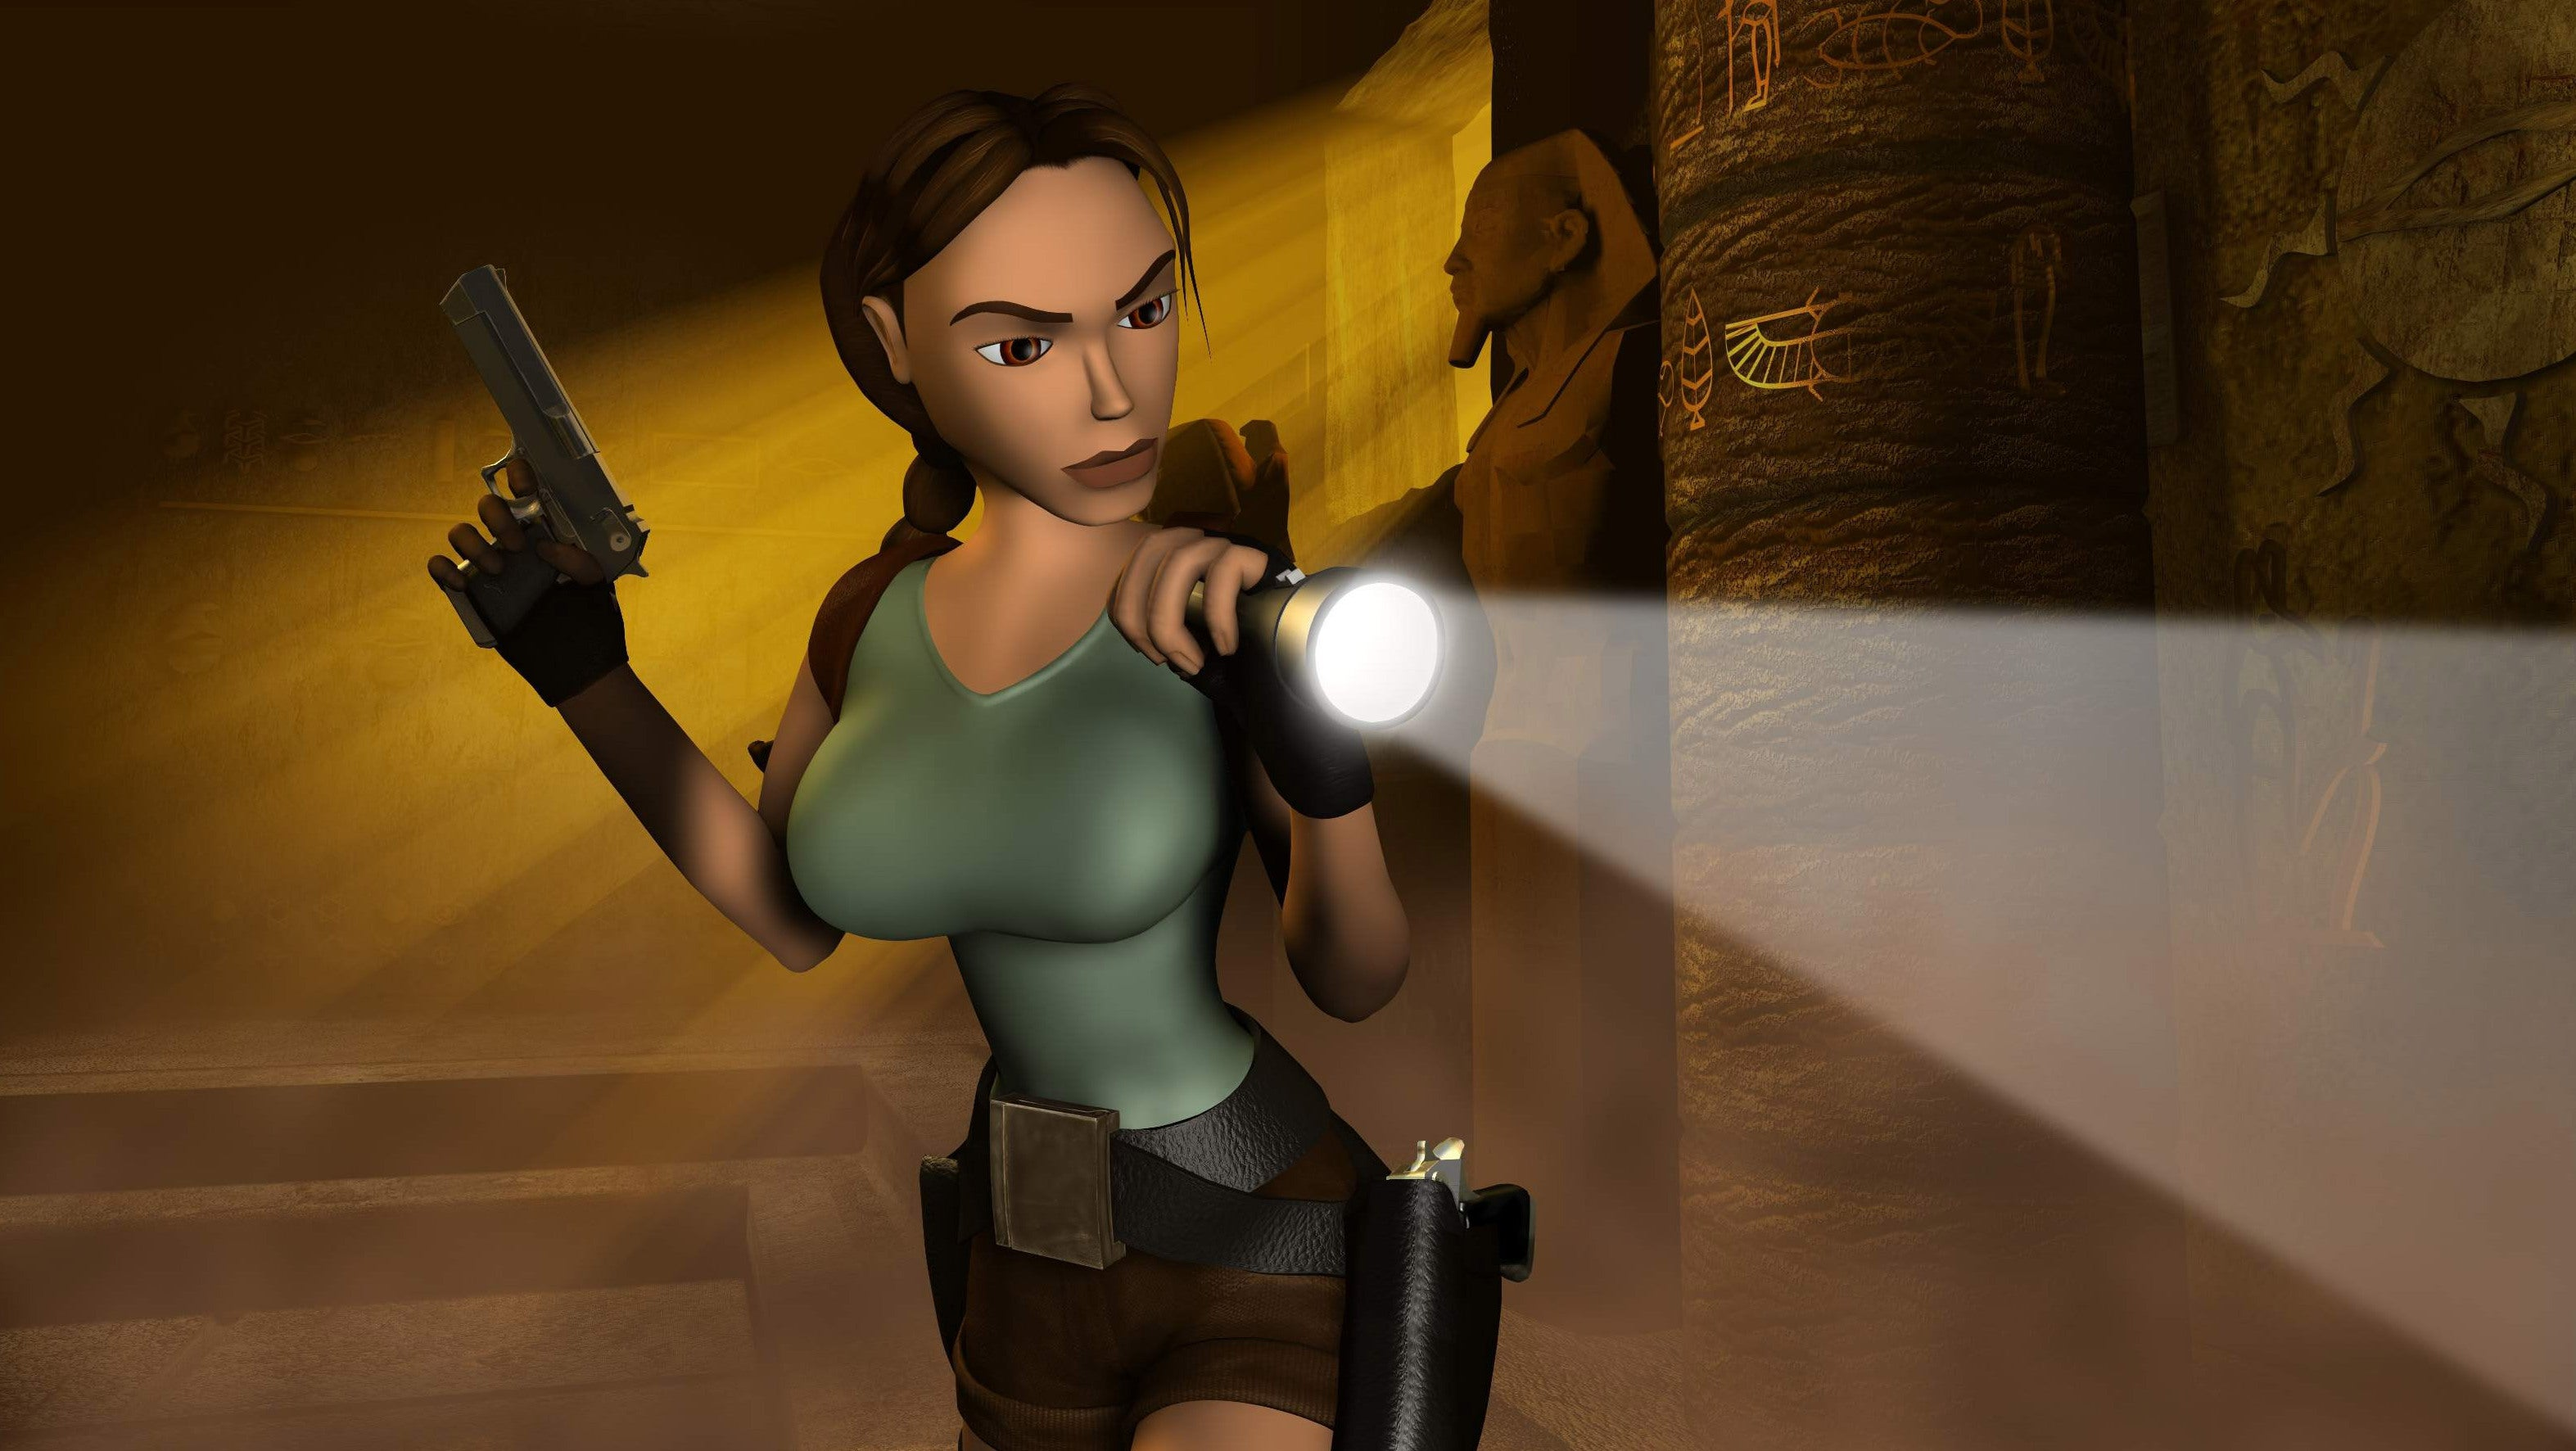 Lara Croft Contest Date from 1999 Inspires Hilarious Fan Fiction